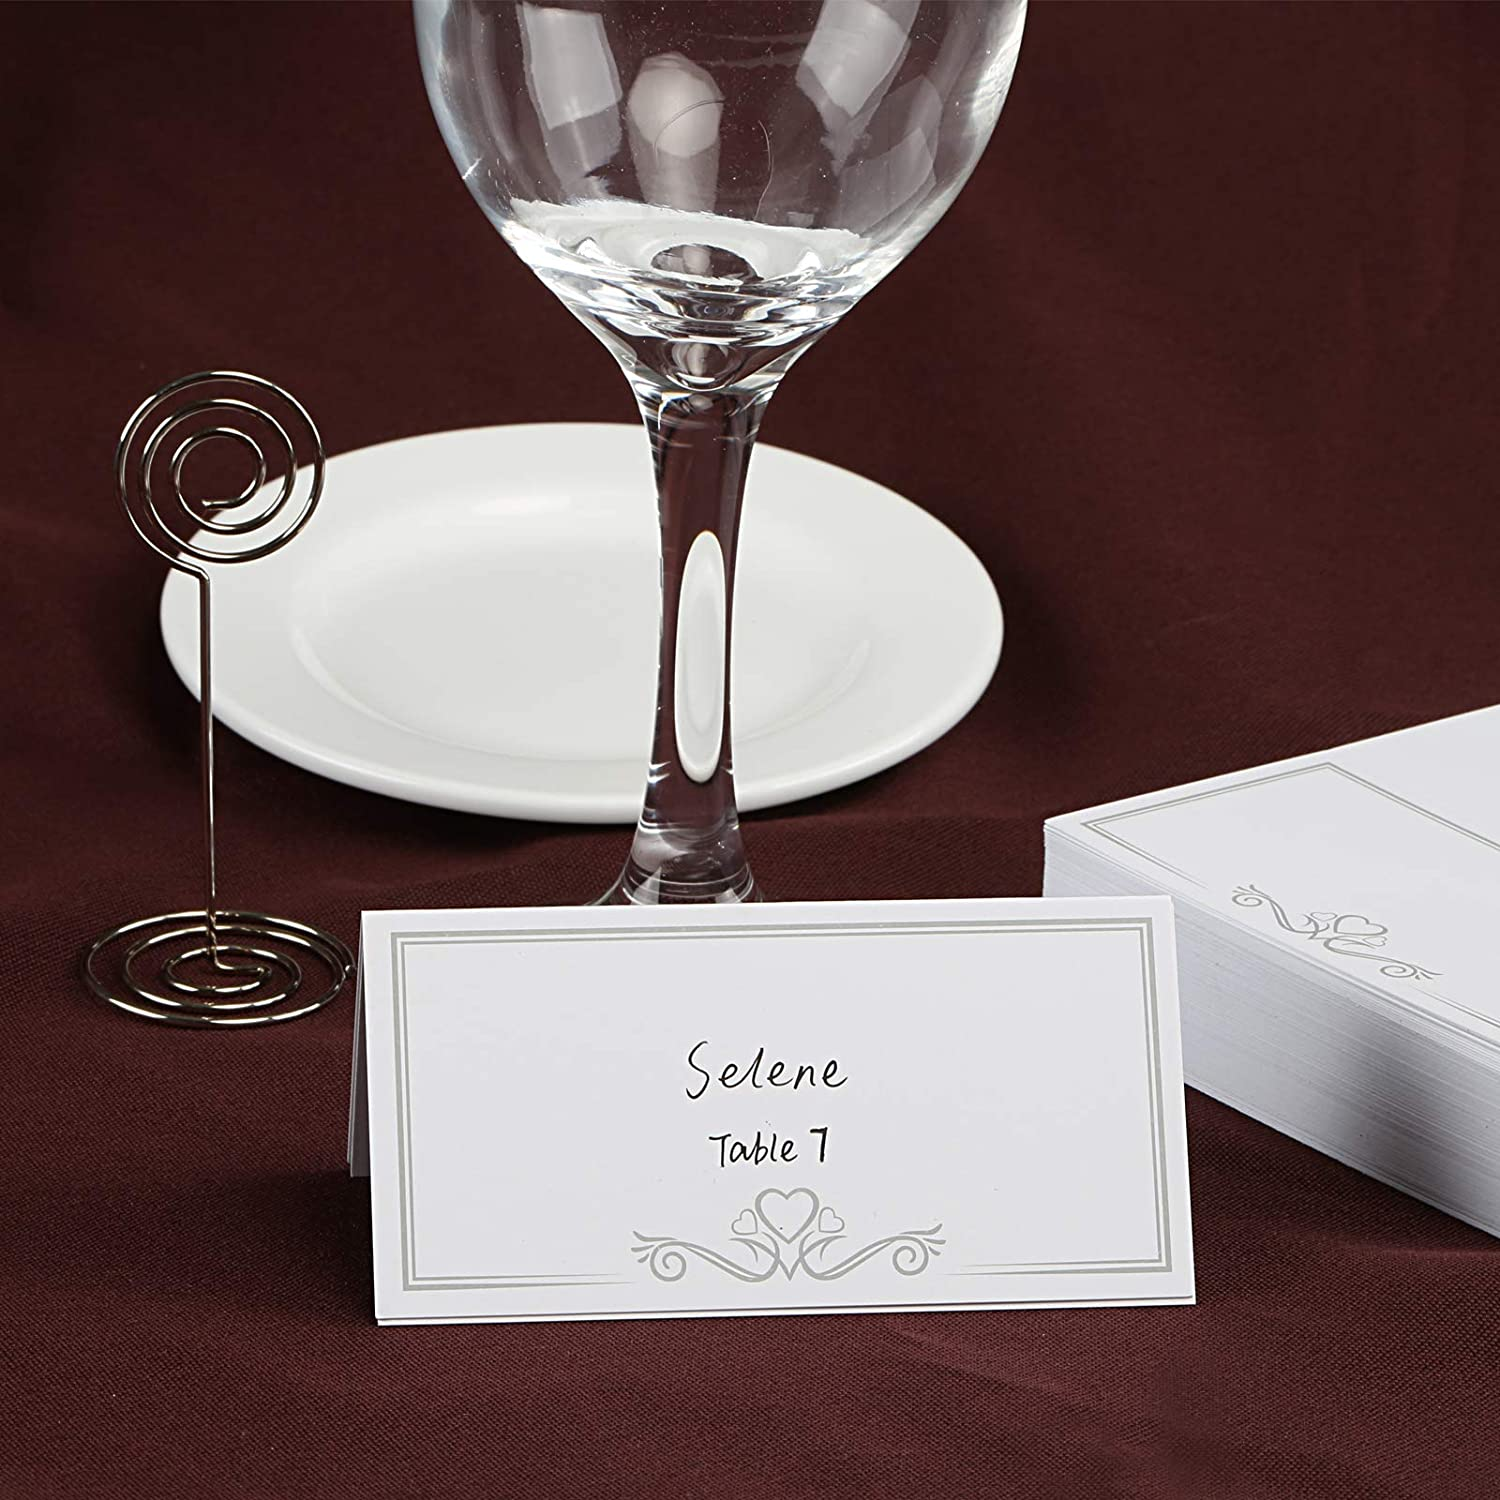 2 x 3.9 Inches Kesoto 100 PCS Table Name Place Cards Small Tent Cards Events Banquets Perfect for Weddings